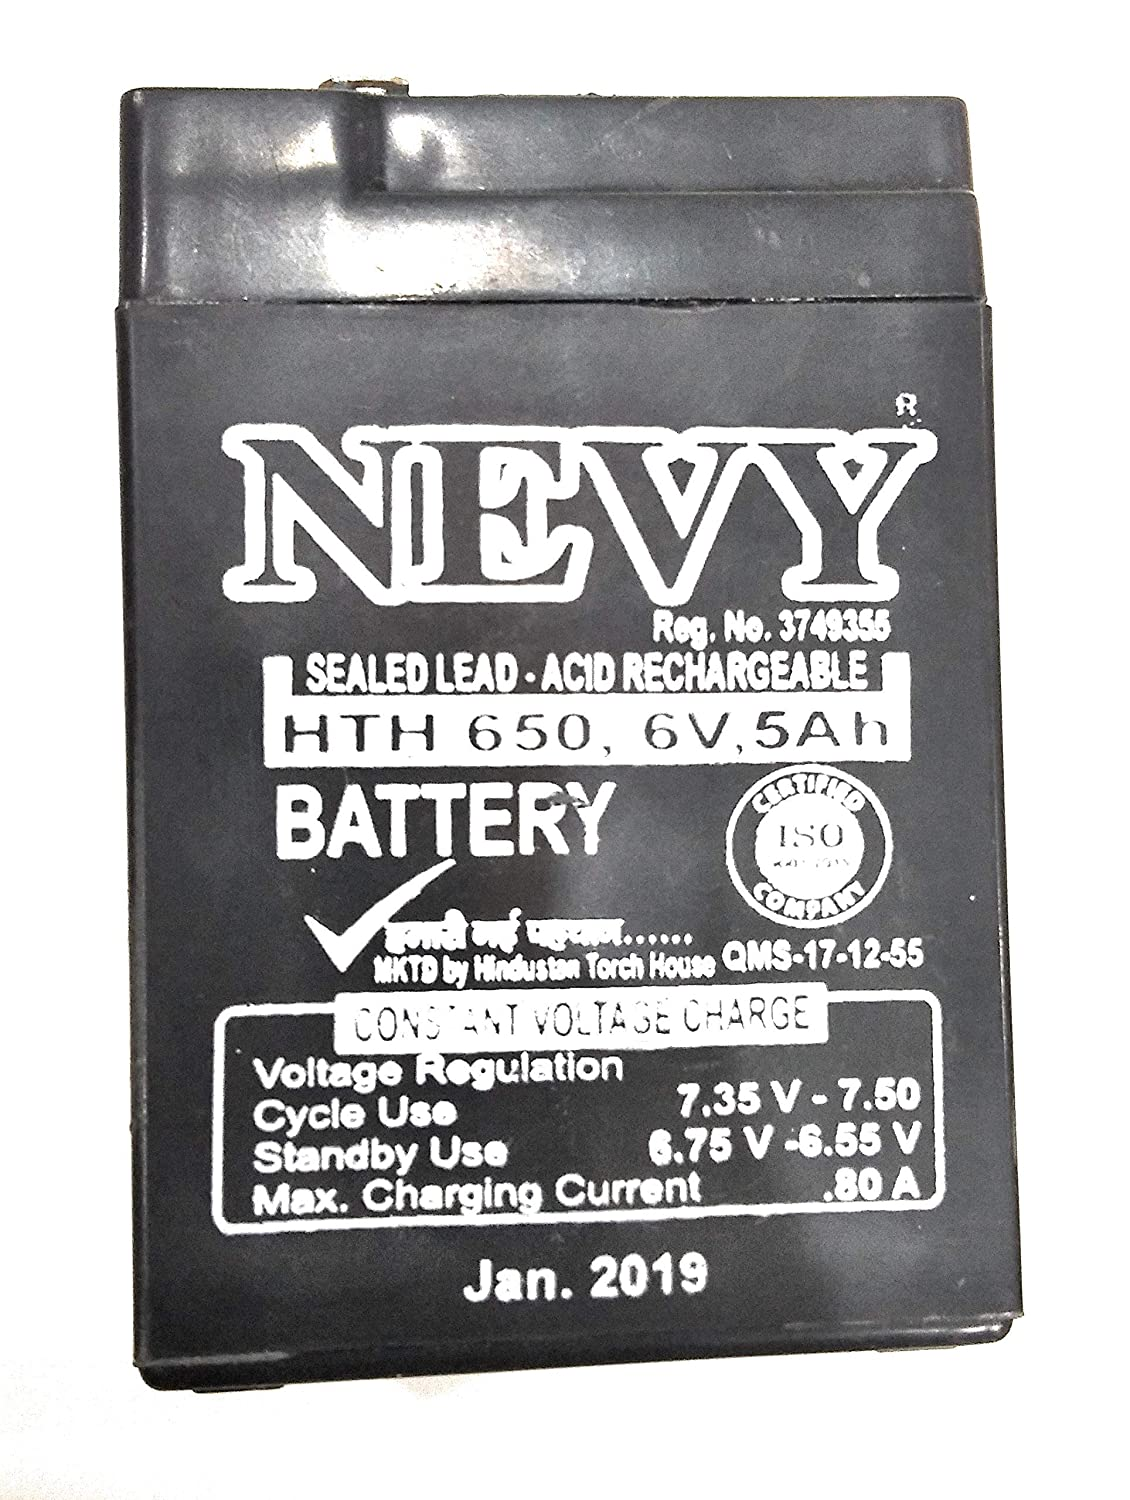 Sunca 6v 45ah Sealed Lead Acid Rechargeable Battery For Ups Toys Solar Etc Circuit Diagram Of Emergency Light Buy Online At Low Prices In India Reviews Ratings